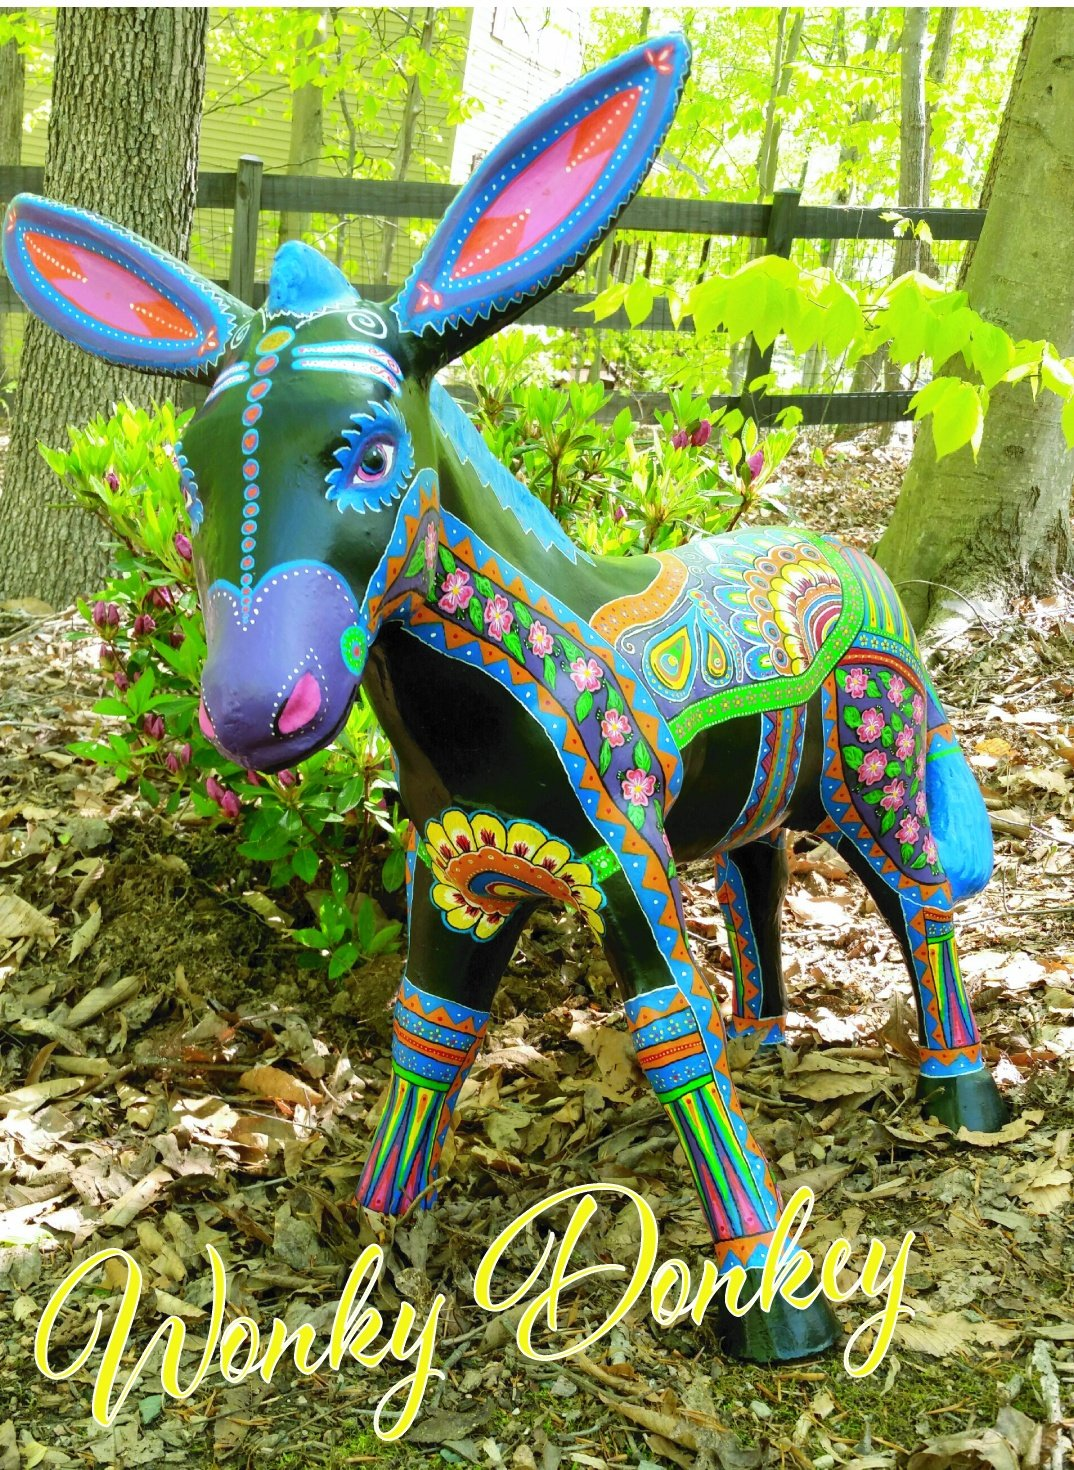 Wonky Donkey is being auctioned off to help raise money for Green Dogs Unleashed. Place your bids at Boutique Boutique and The Shoe Store Next Door on the Charlottesville, VA Downtown Mall. http://www.shopboutiqueboutique.com/